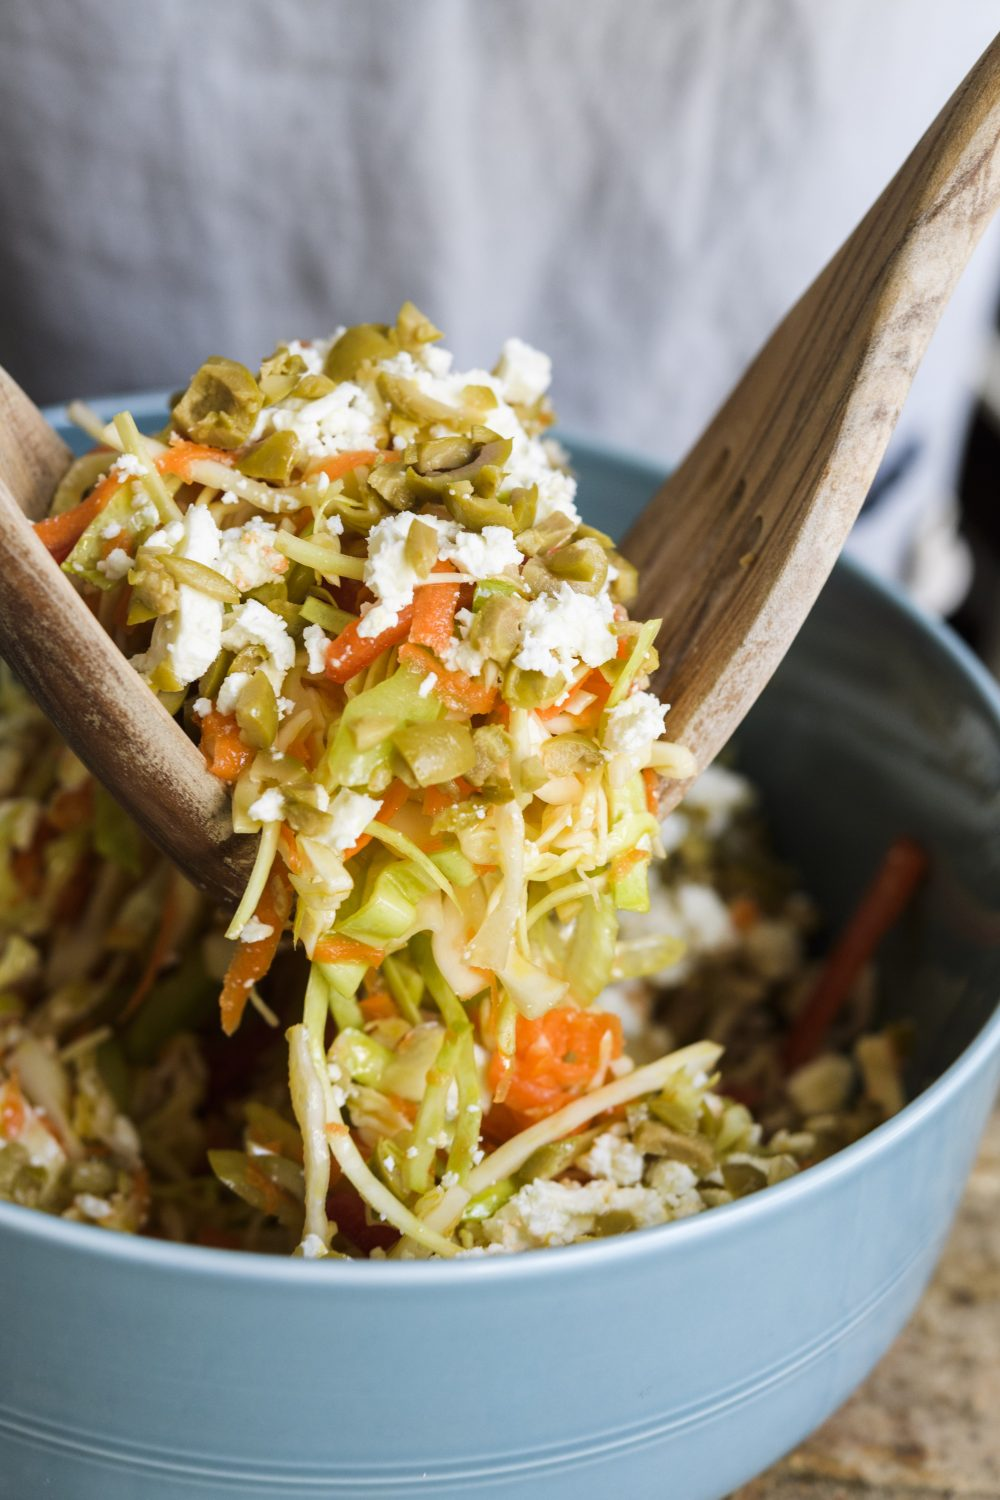 Greek Cabbage Salad with Carrots and Olives (Politiki Salata)